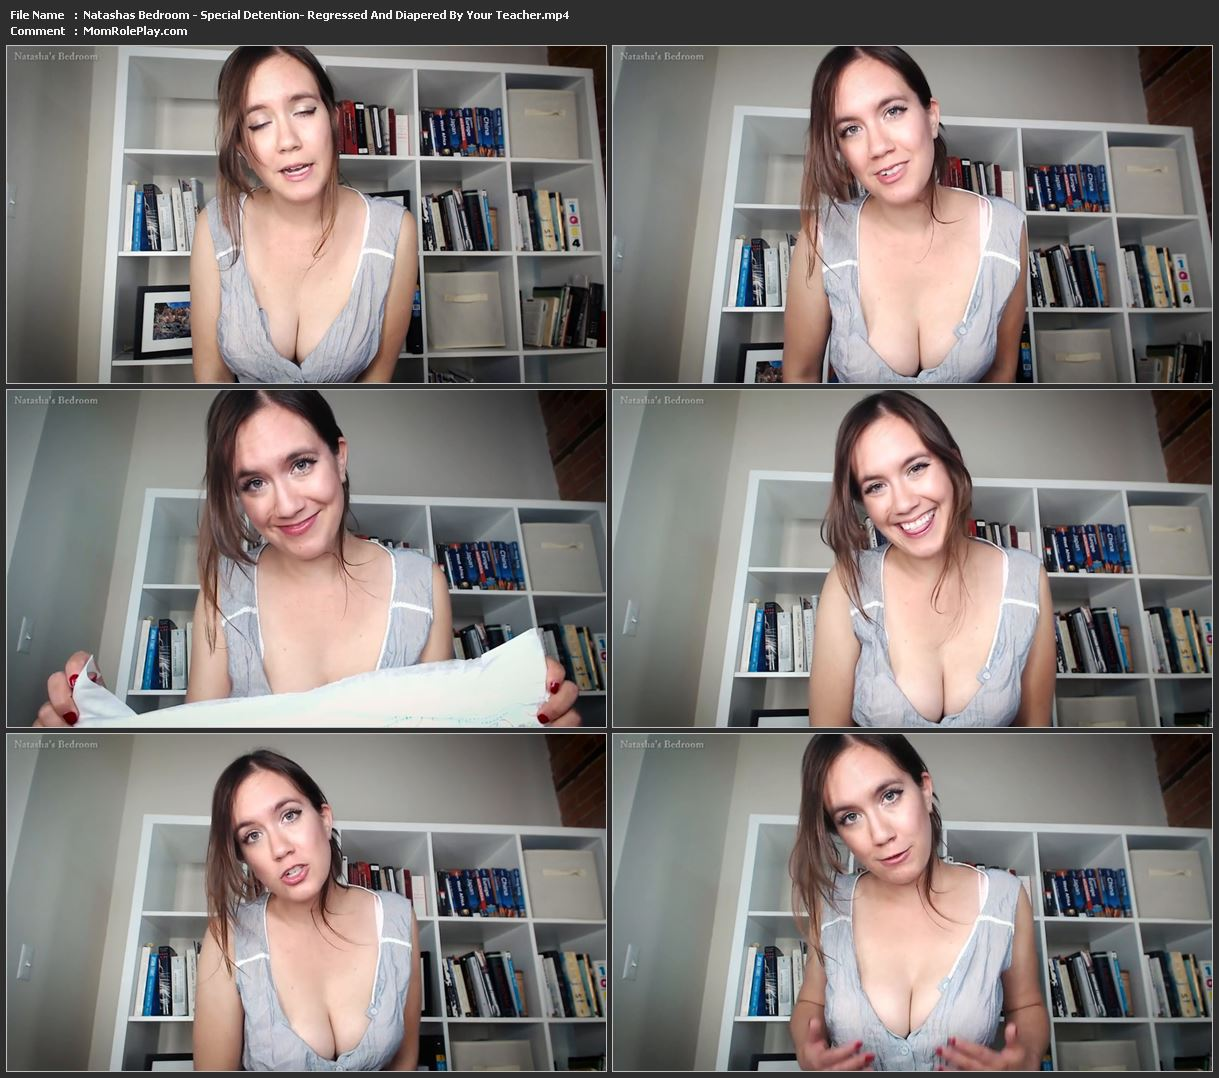 Natashas Bedroom - Special Detention: Regressed And Diapered By Your Teacher